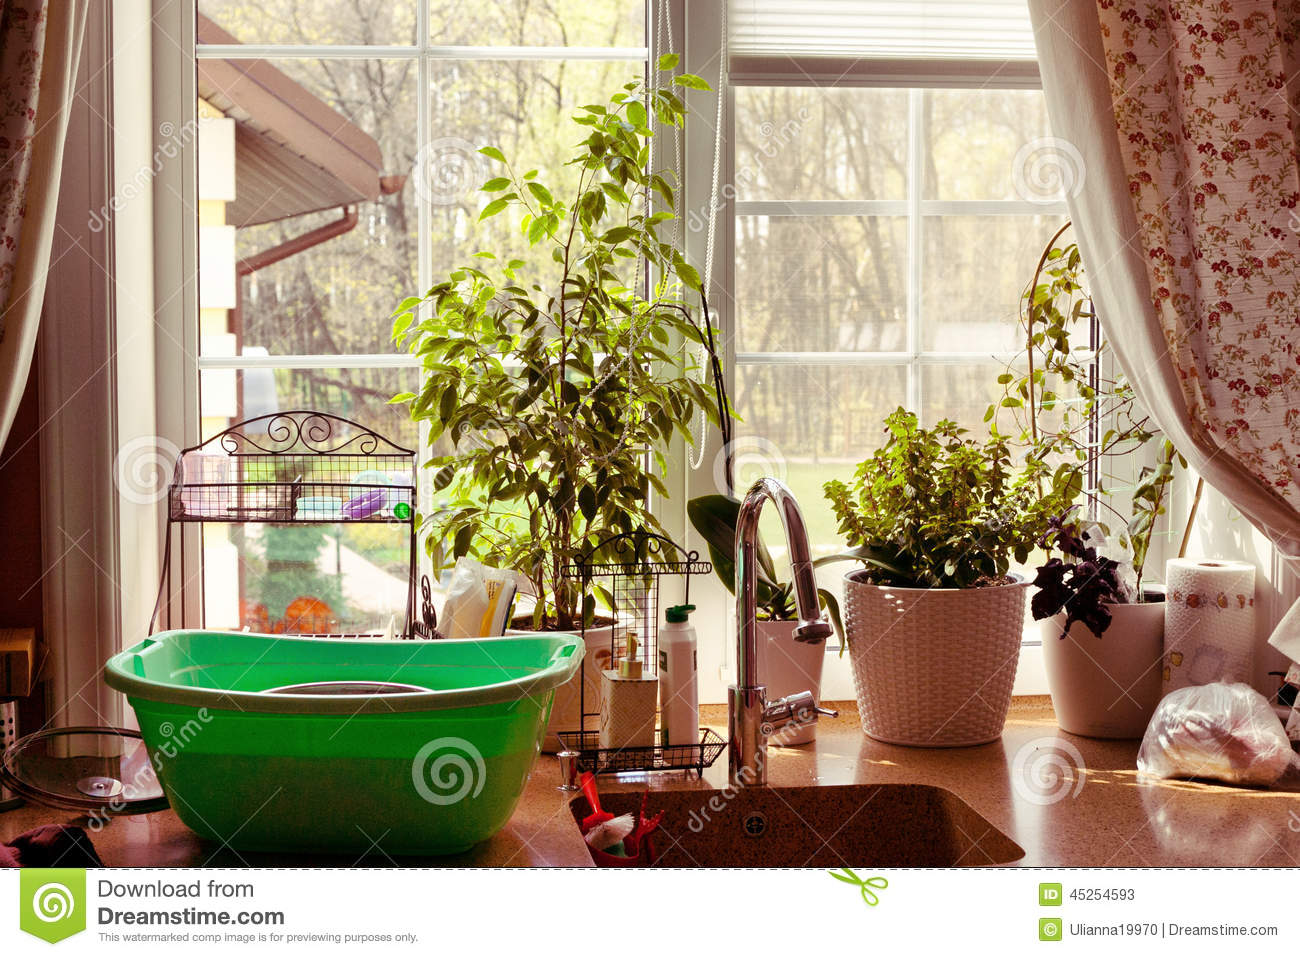 Kitchen window for plants - Garden Kitchen Plants View Window